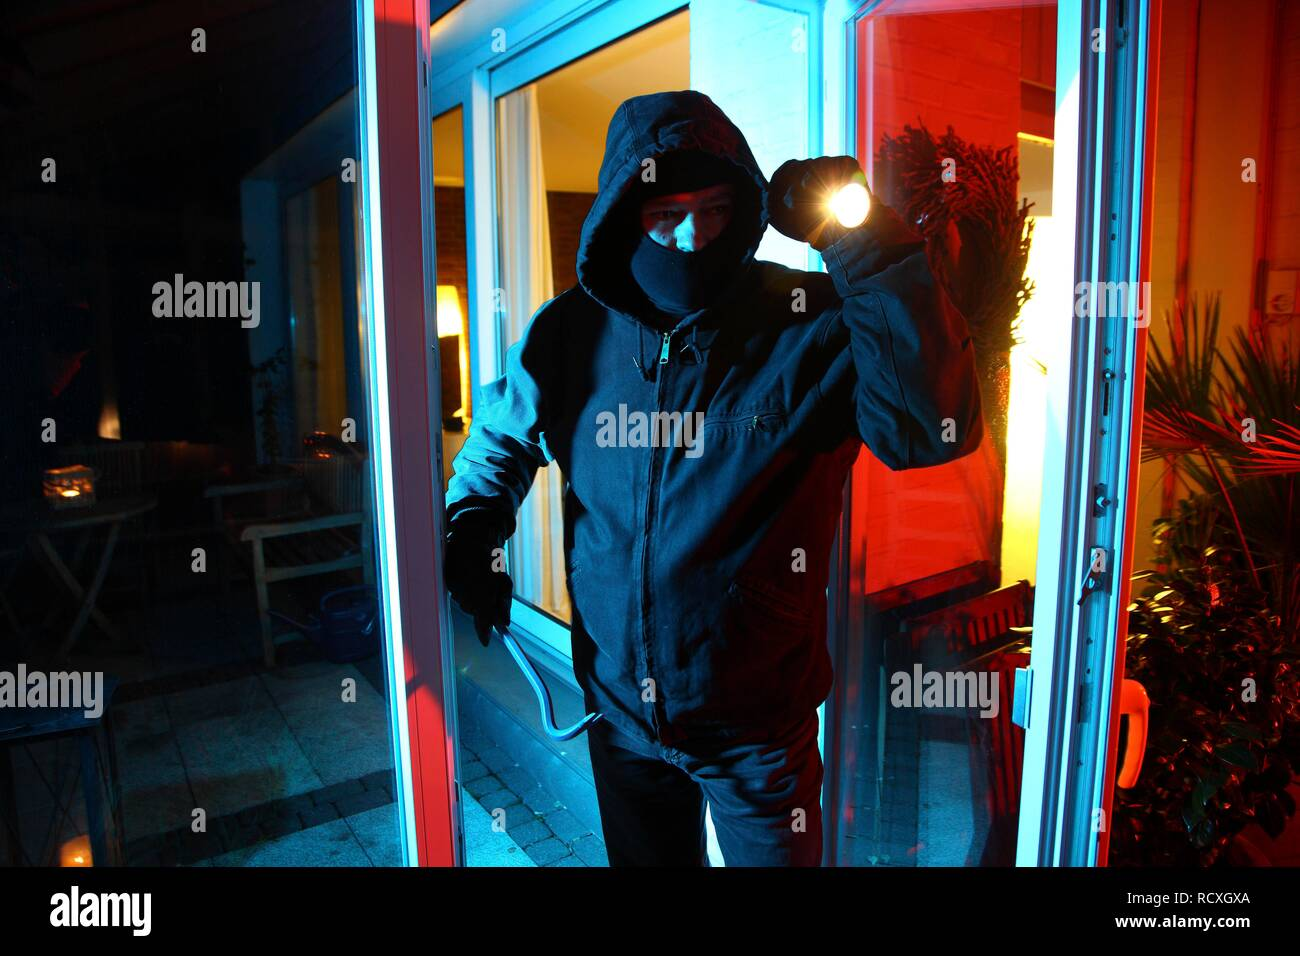 Burglar breaks open the patio door with a crowbar, enters the apartment, symbolic image for domestic burglary - Stock Image